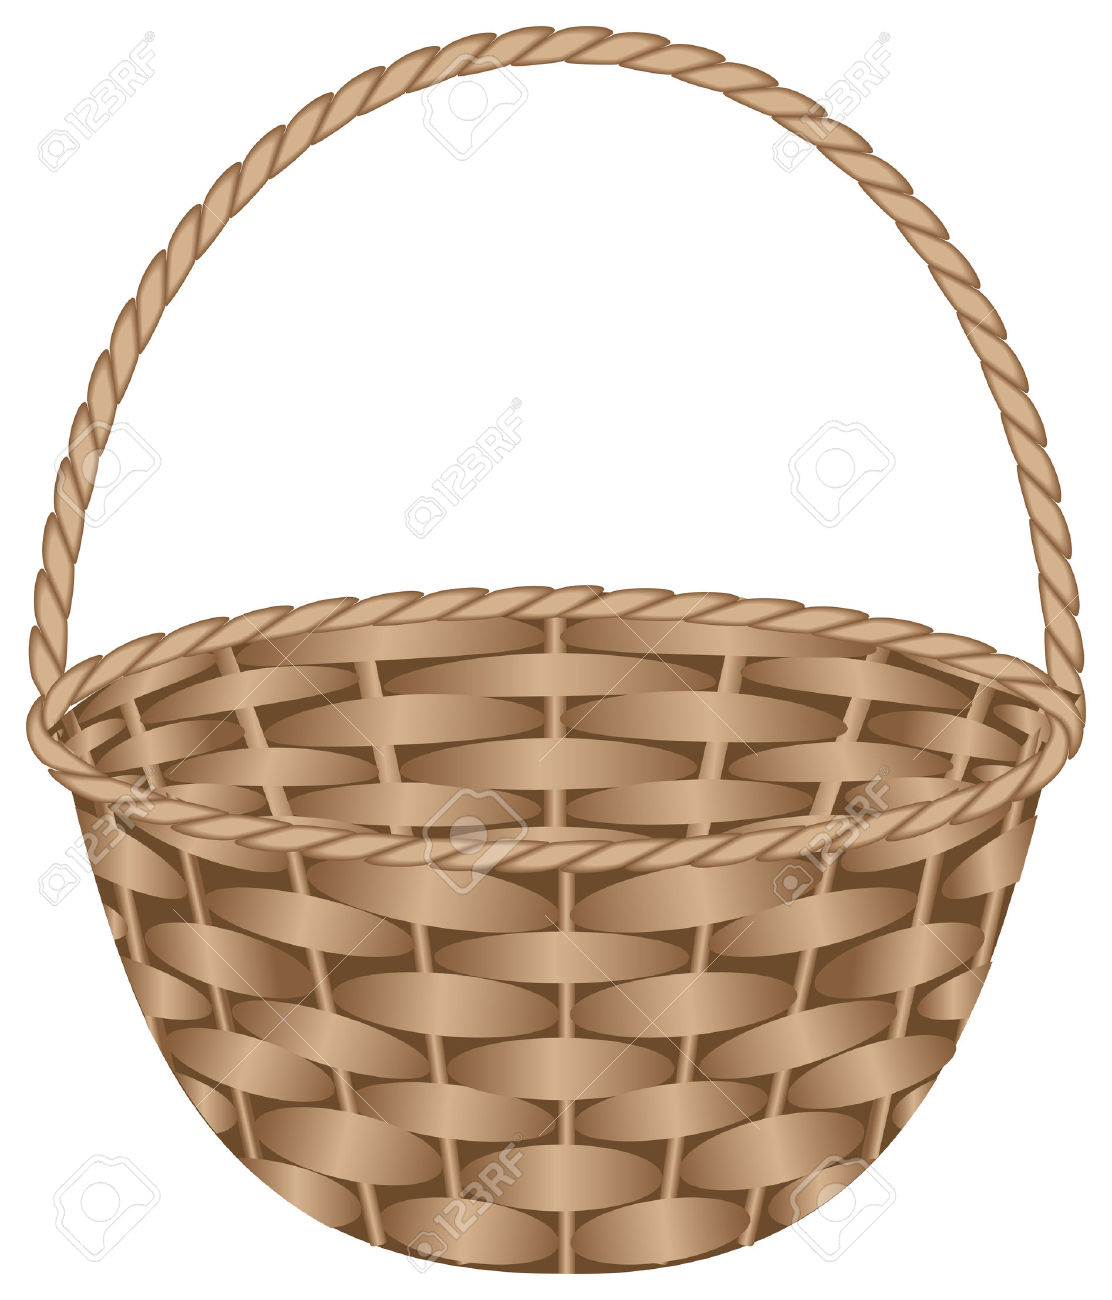 Weaved basket clipart.